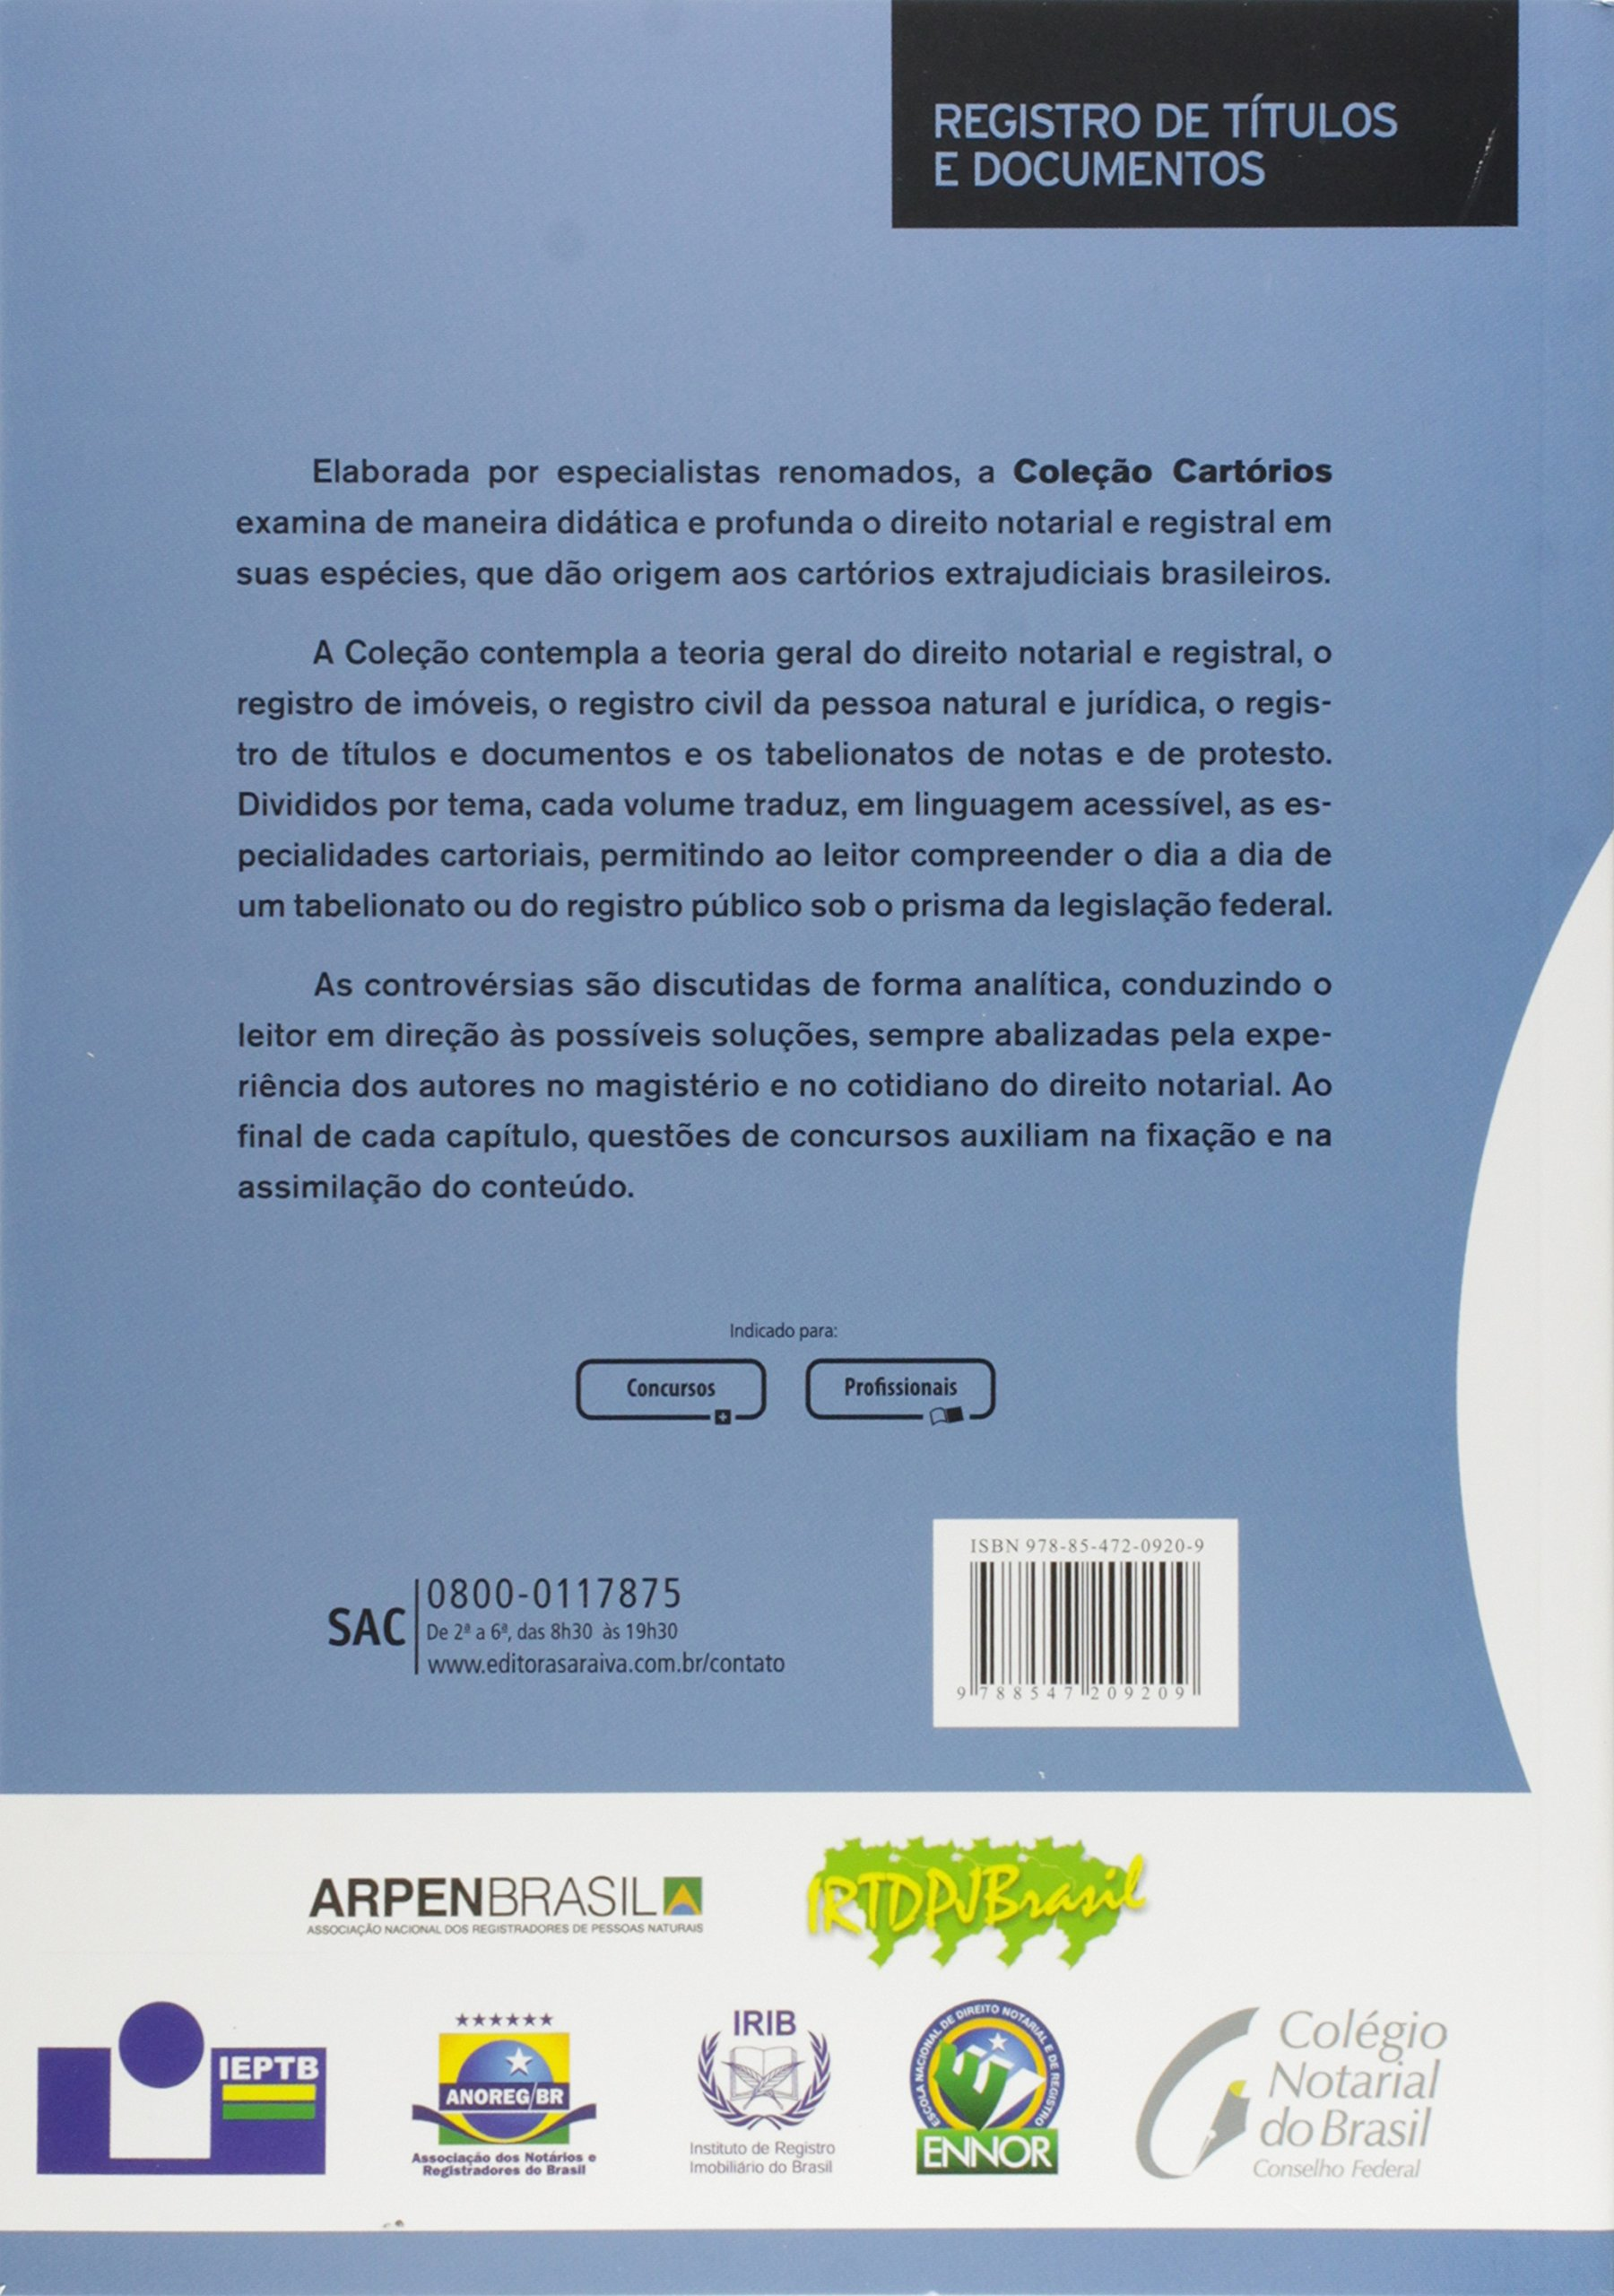 Registro De Titulos E Documentos - Col. Cartorios - 2ª Ed. 2016: Christiano Cassettari: 9788547209209: Amazon.com: Books